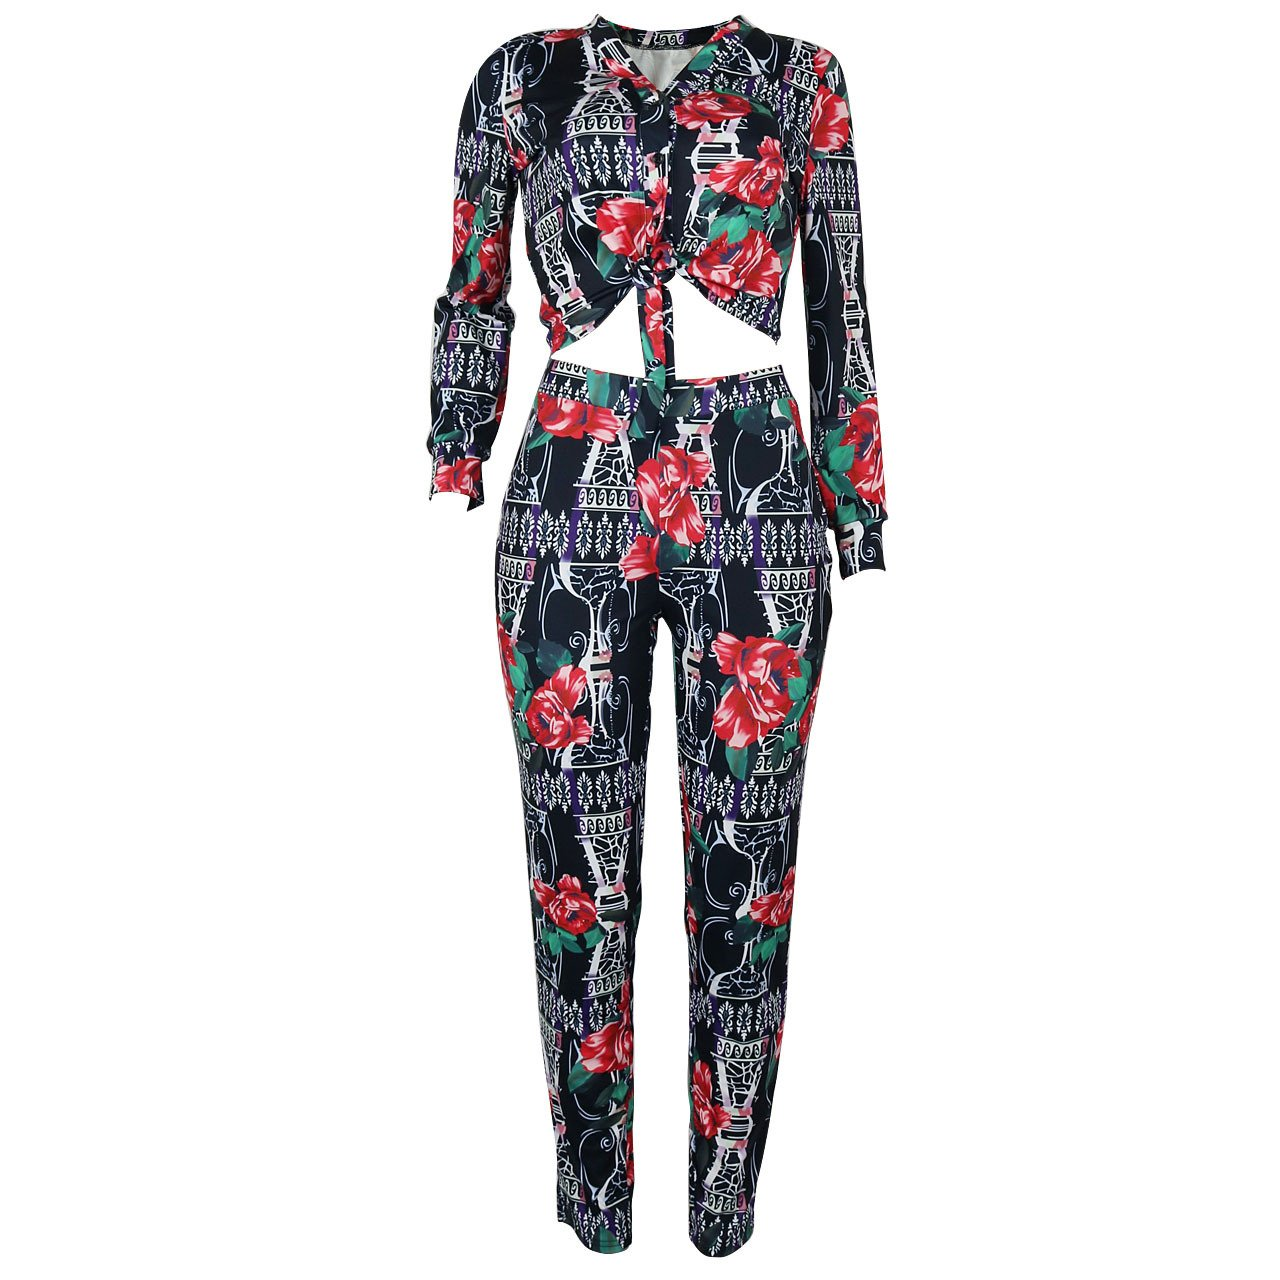 2 Piece Outfits for Women Floral Print Stretch Long Sleeve V Neck Blouse + Bodycon Long Pants Black, Small